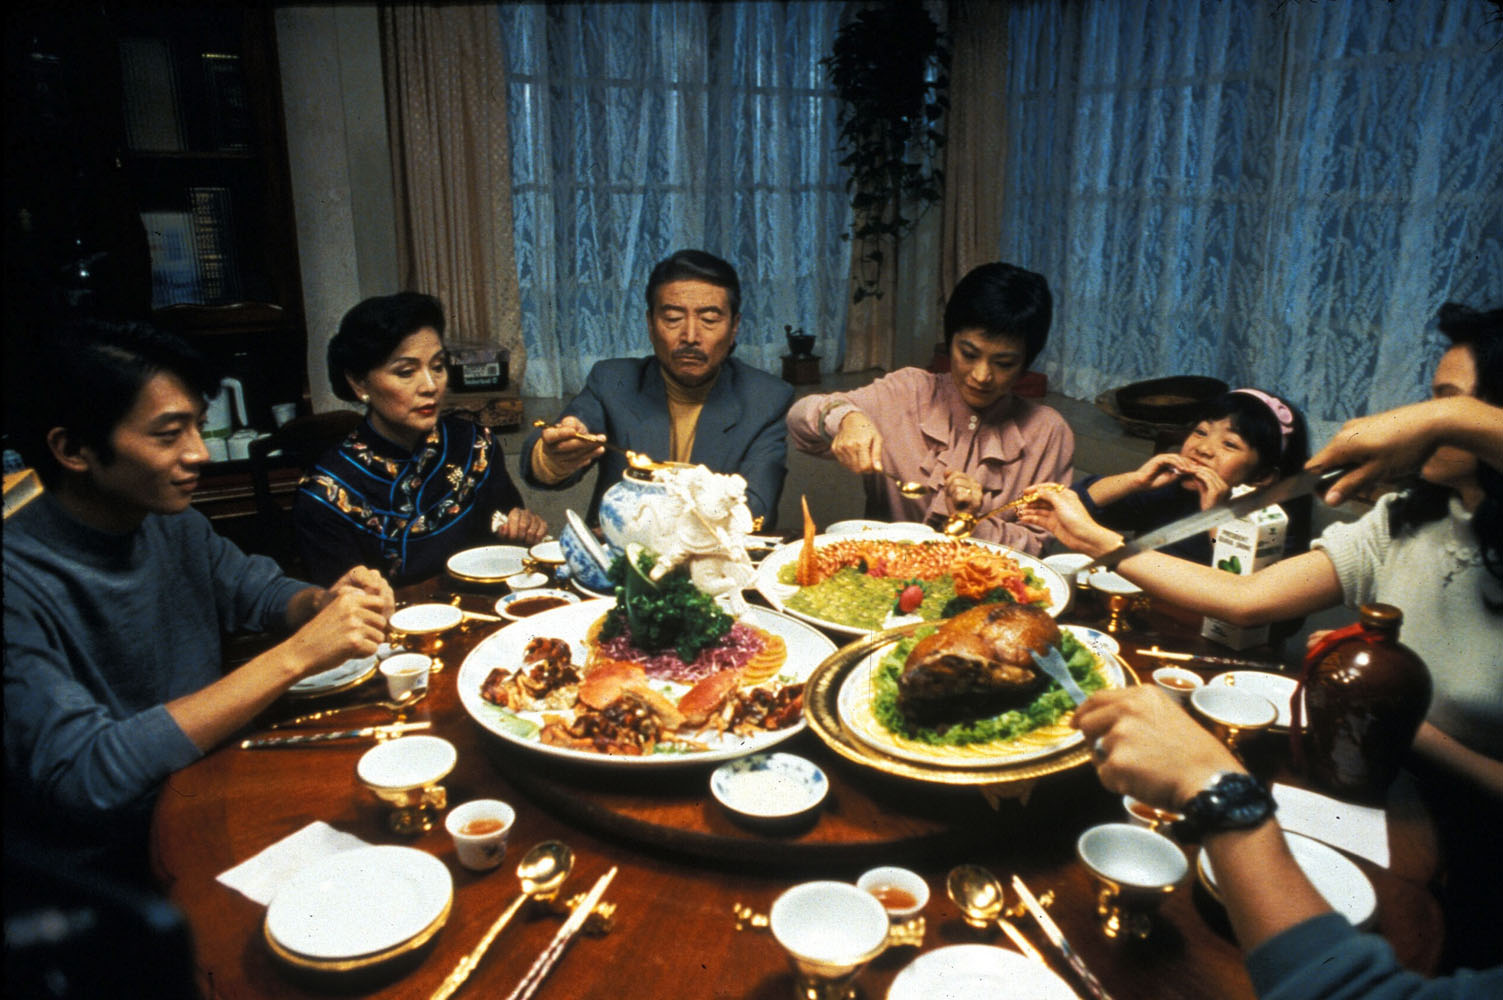 In China, the dinner table is a wonderful, terrible place.